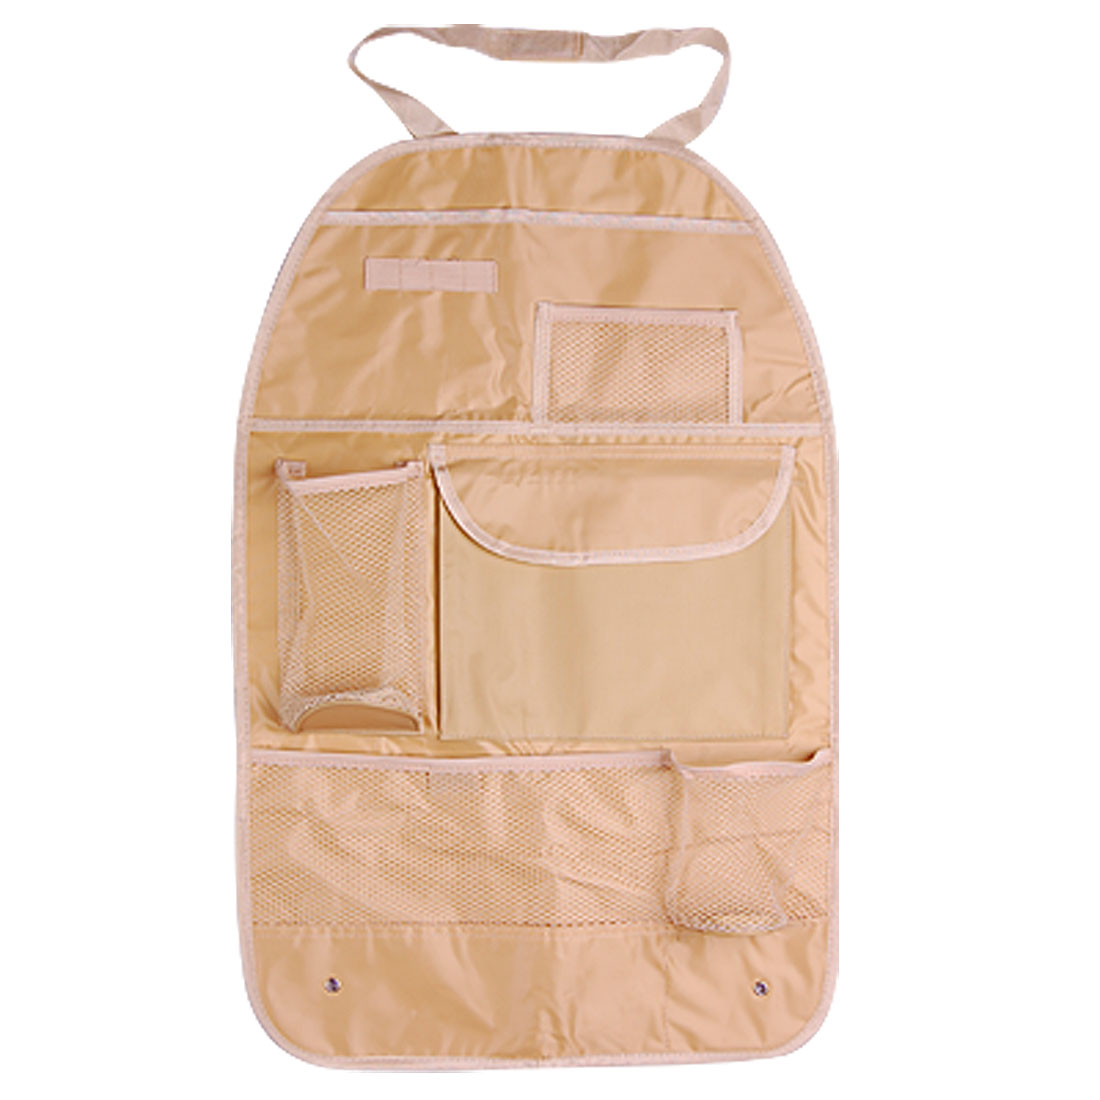 Khaki Trip Car Truck Vehicle Front Seat Backpack Organizer